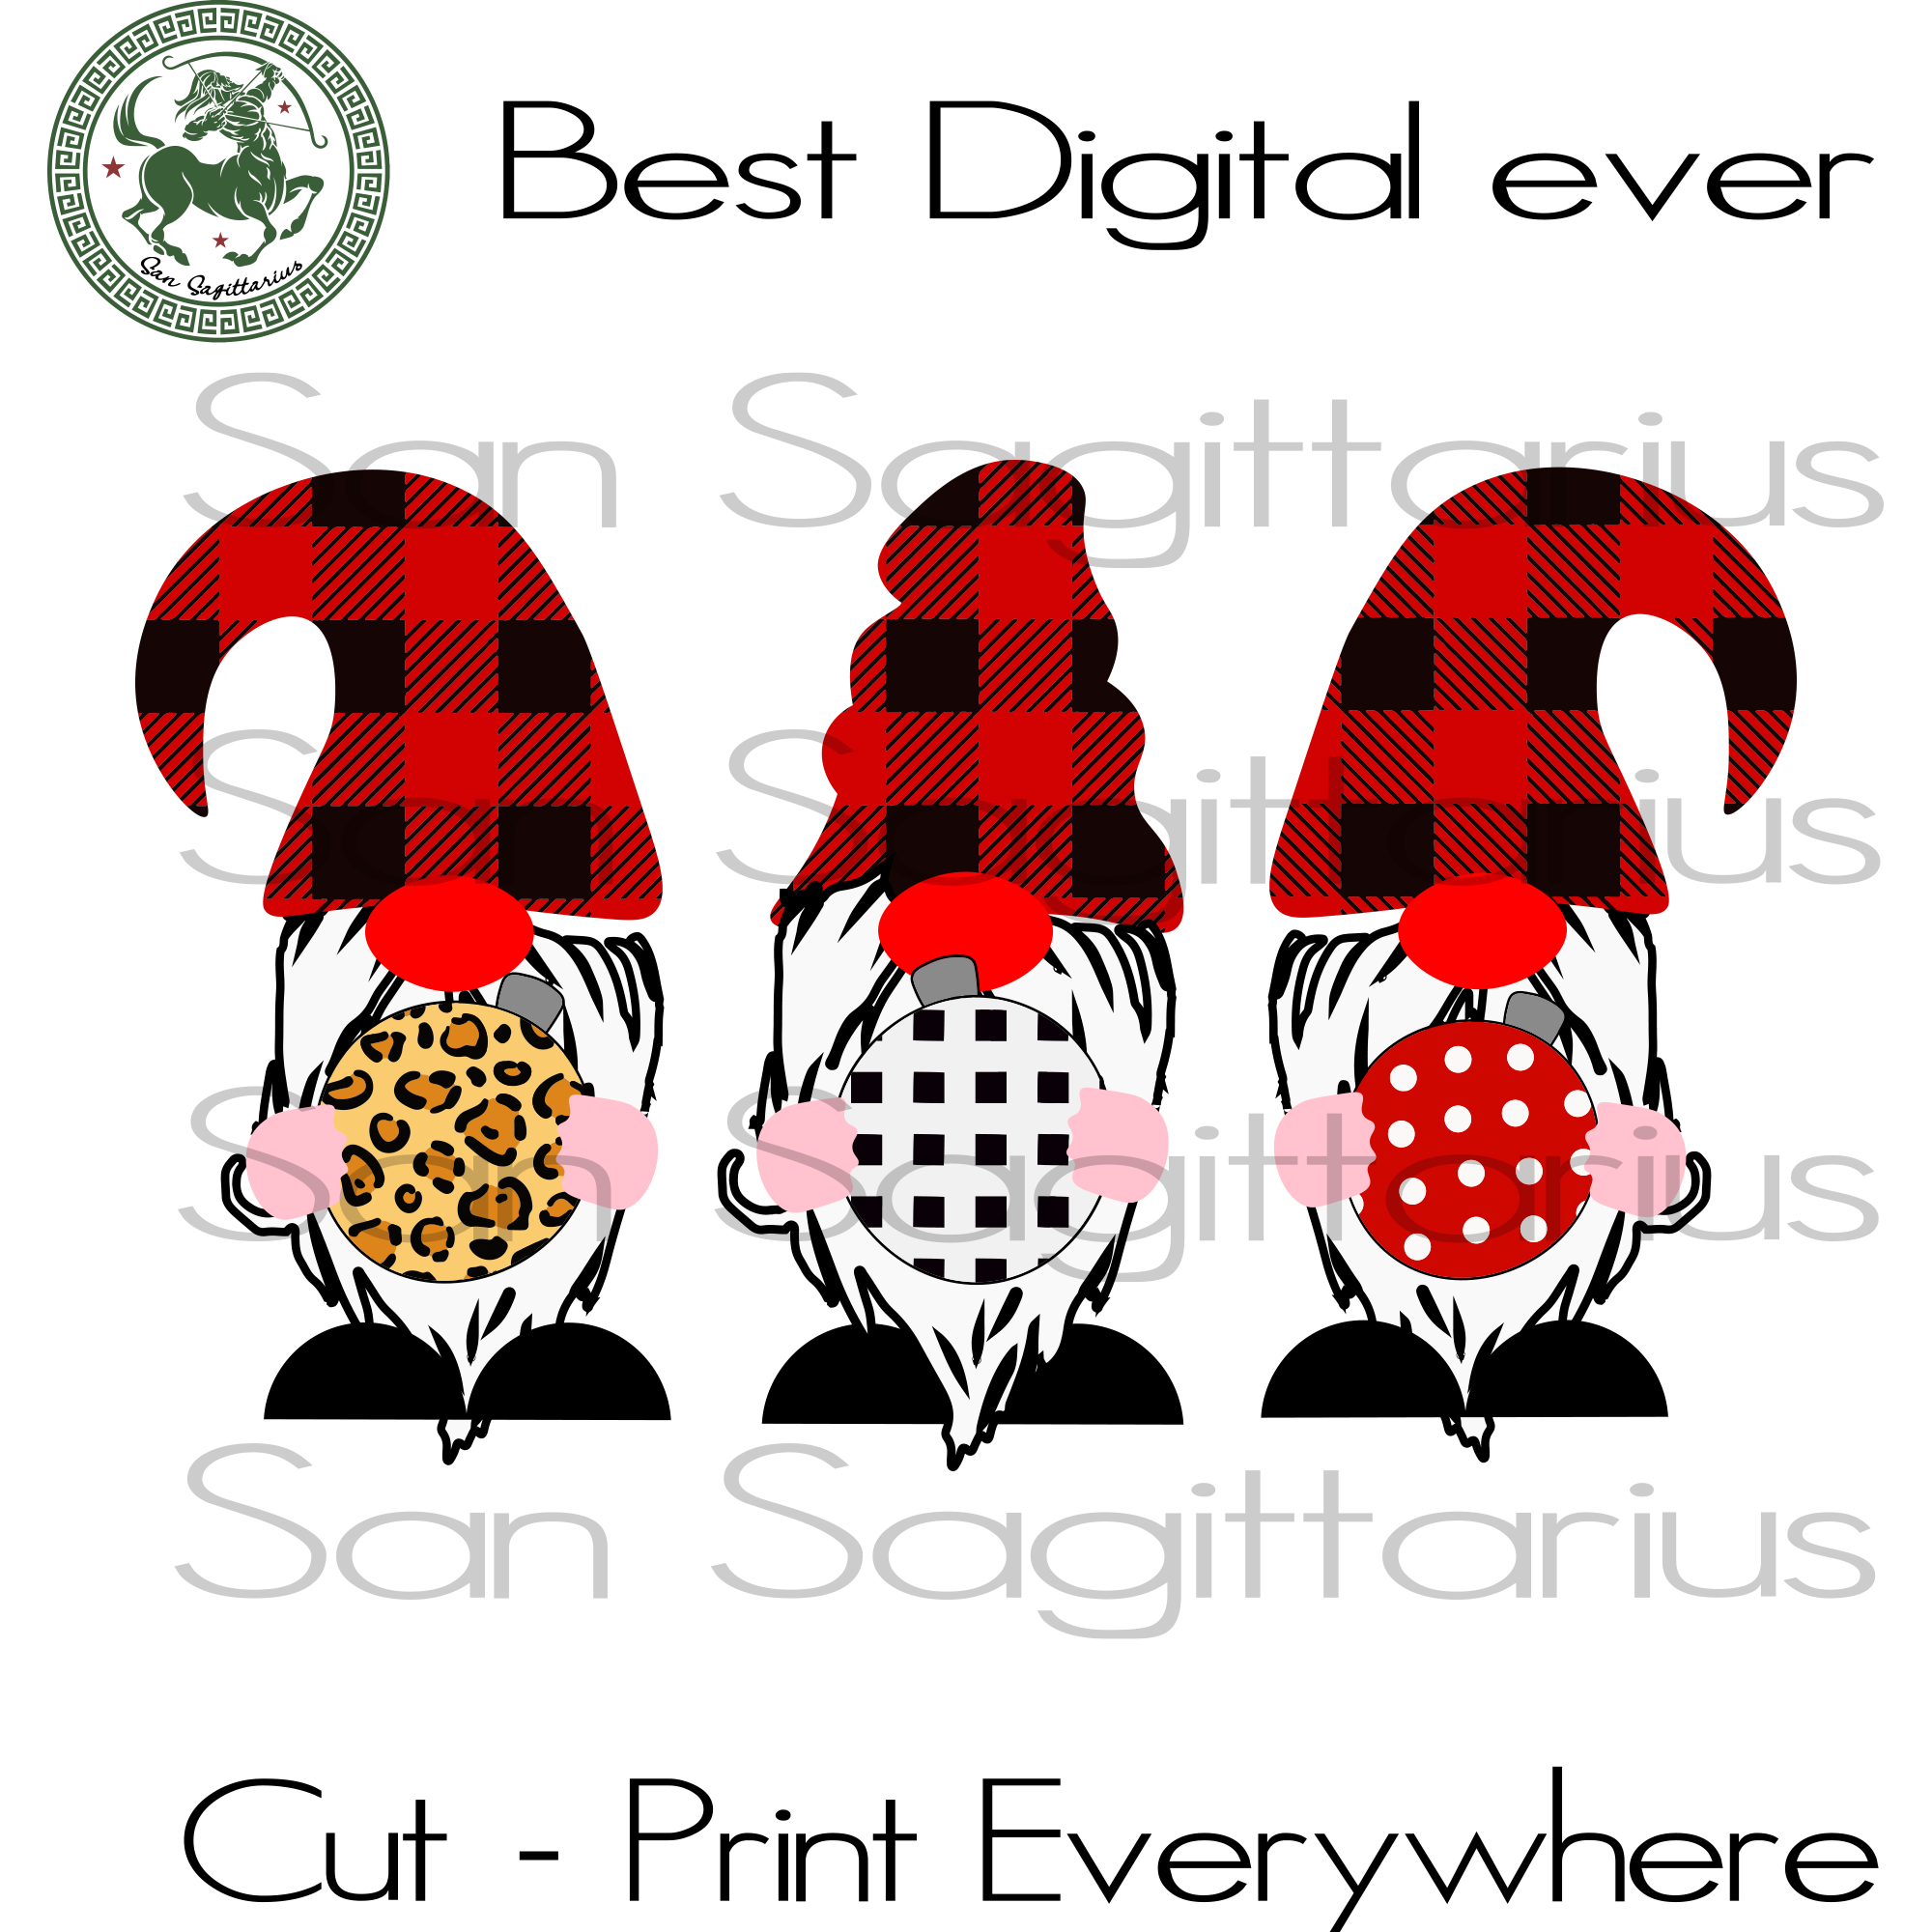 Gnomes With Christmas Ornaments, Gnome Svg, Love Gnome, Ornaments Svg, Gnomie Shirt, Gnome Gift, Christmas Gnome, Merry Christmas, Christmas Svg, Christmas Gift, Christmas Tree, Christmas Tre